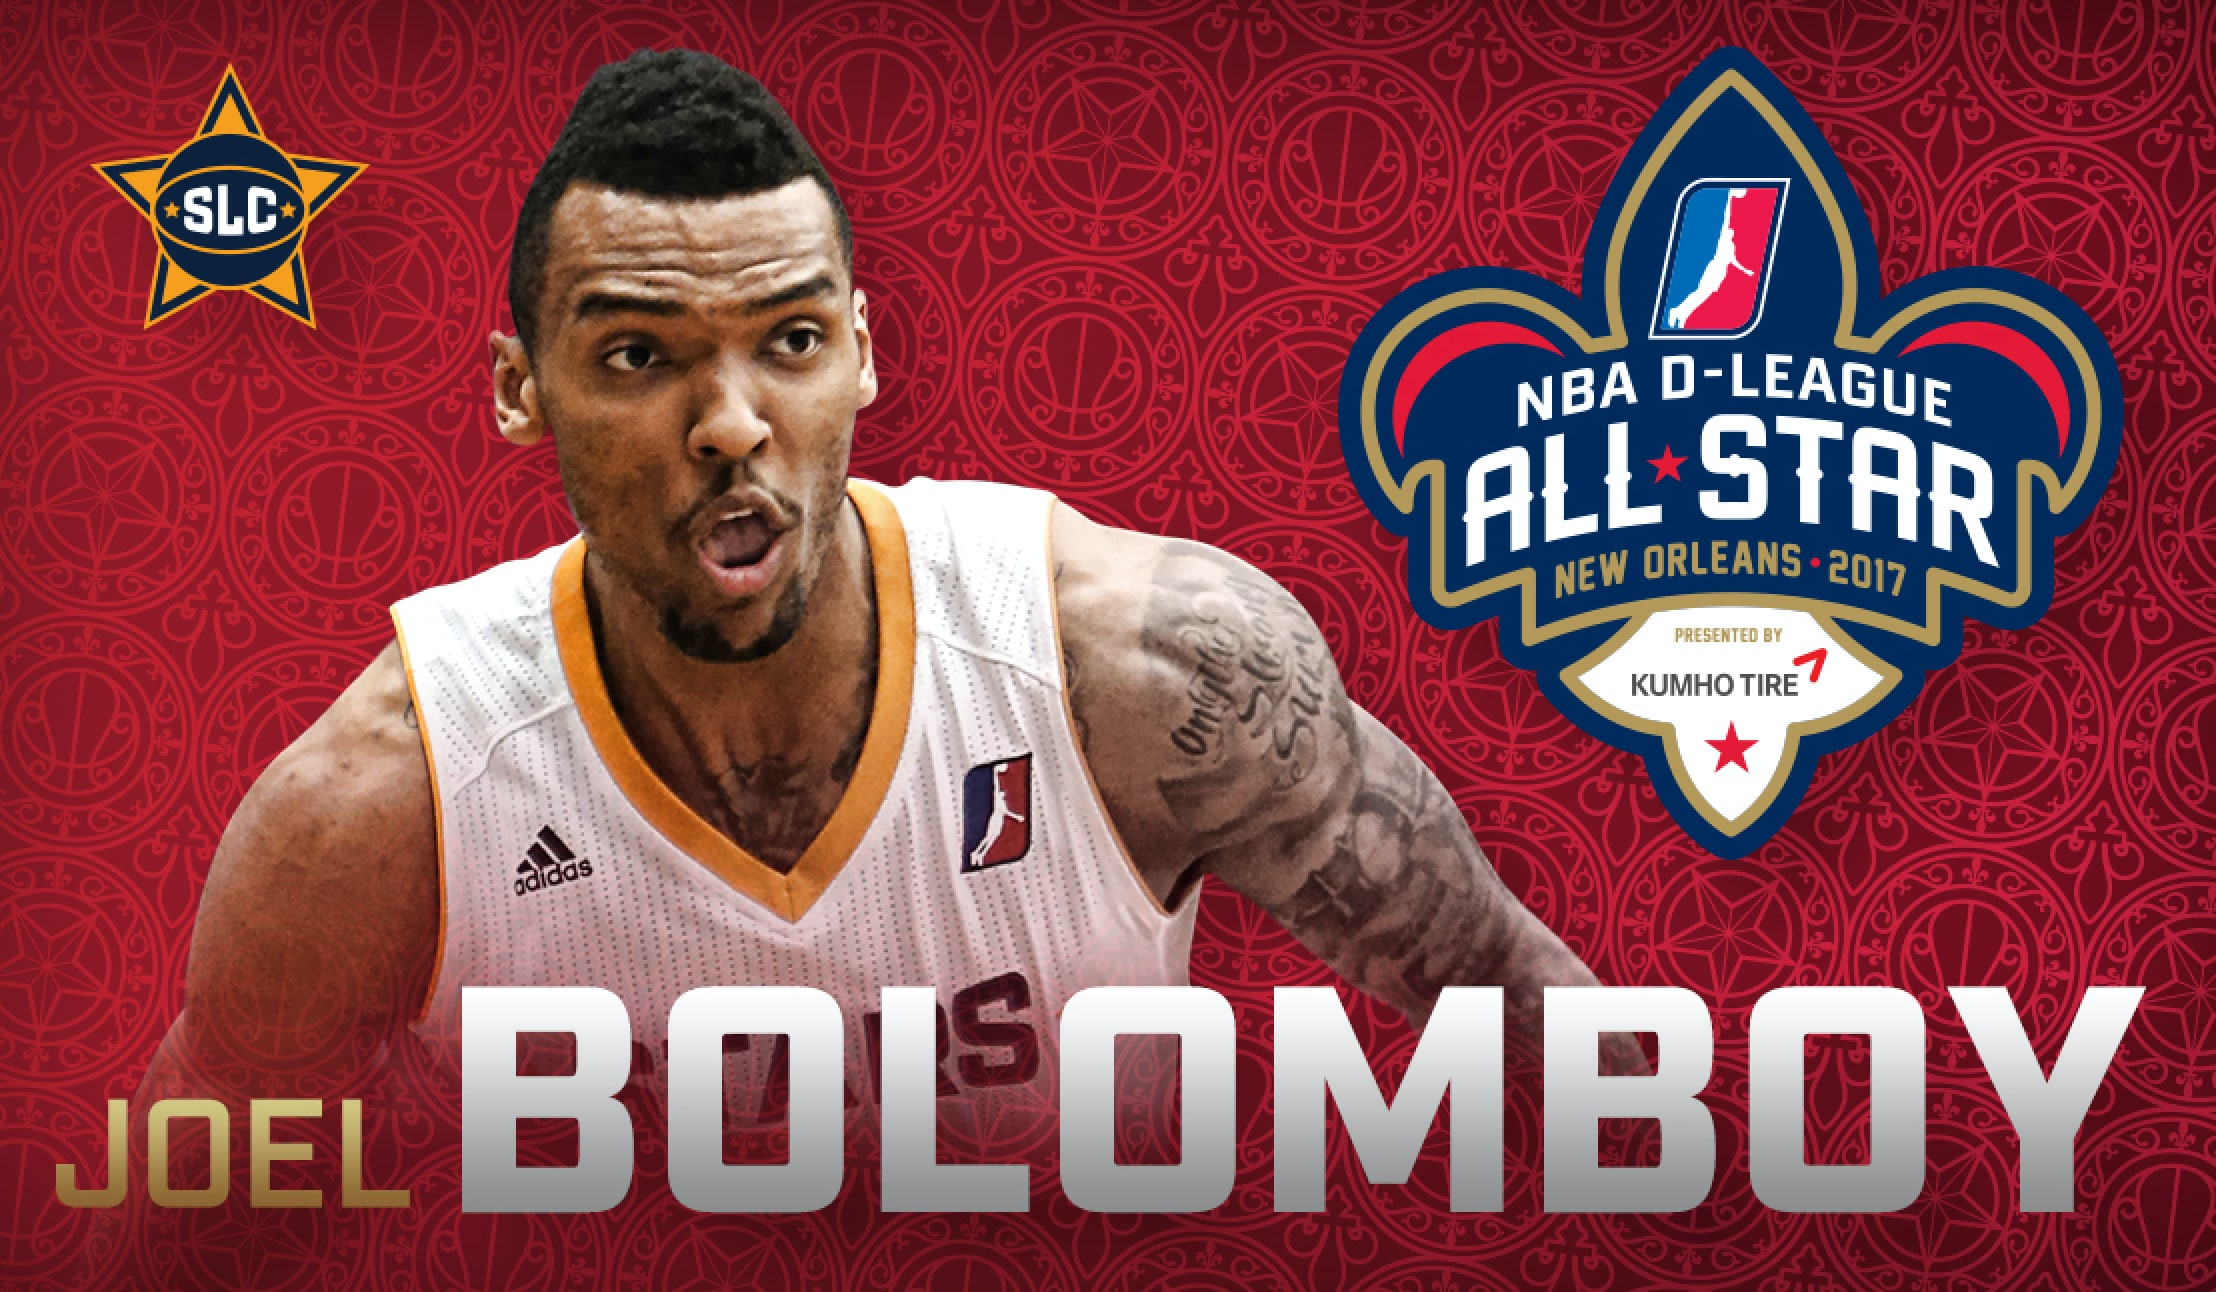 Home all star all star game 2015 comprare canotta nba all - Joel Bolomboy Named 2017 Nba D League All Star Utah Jazz